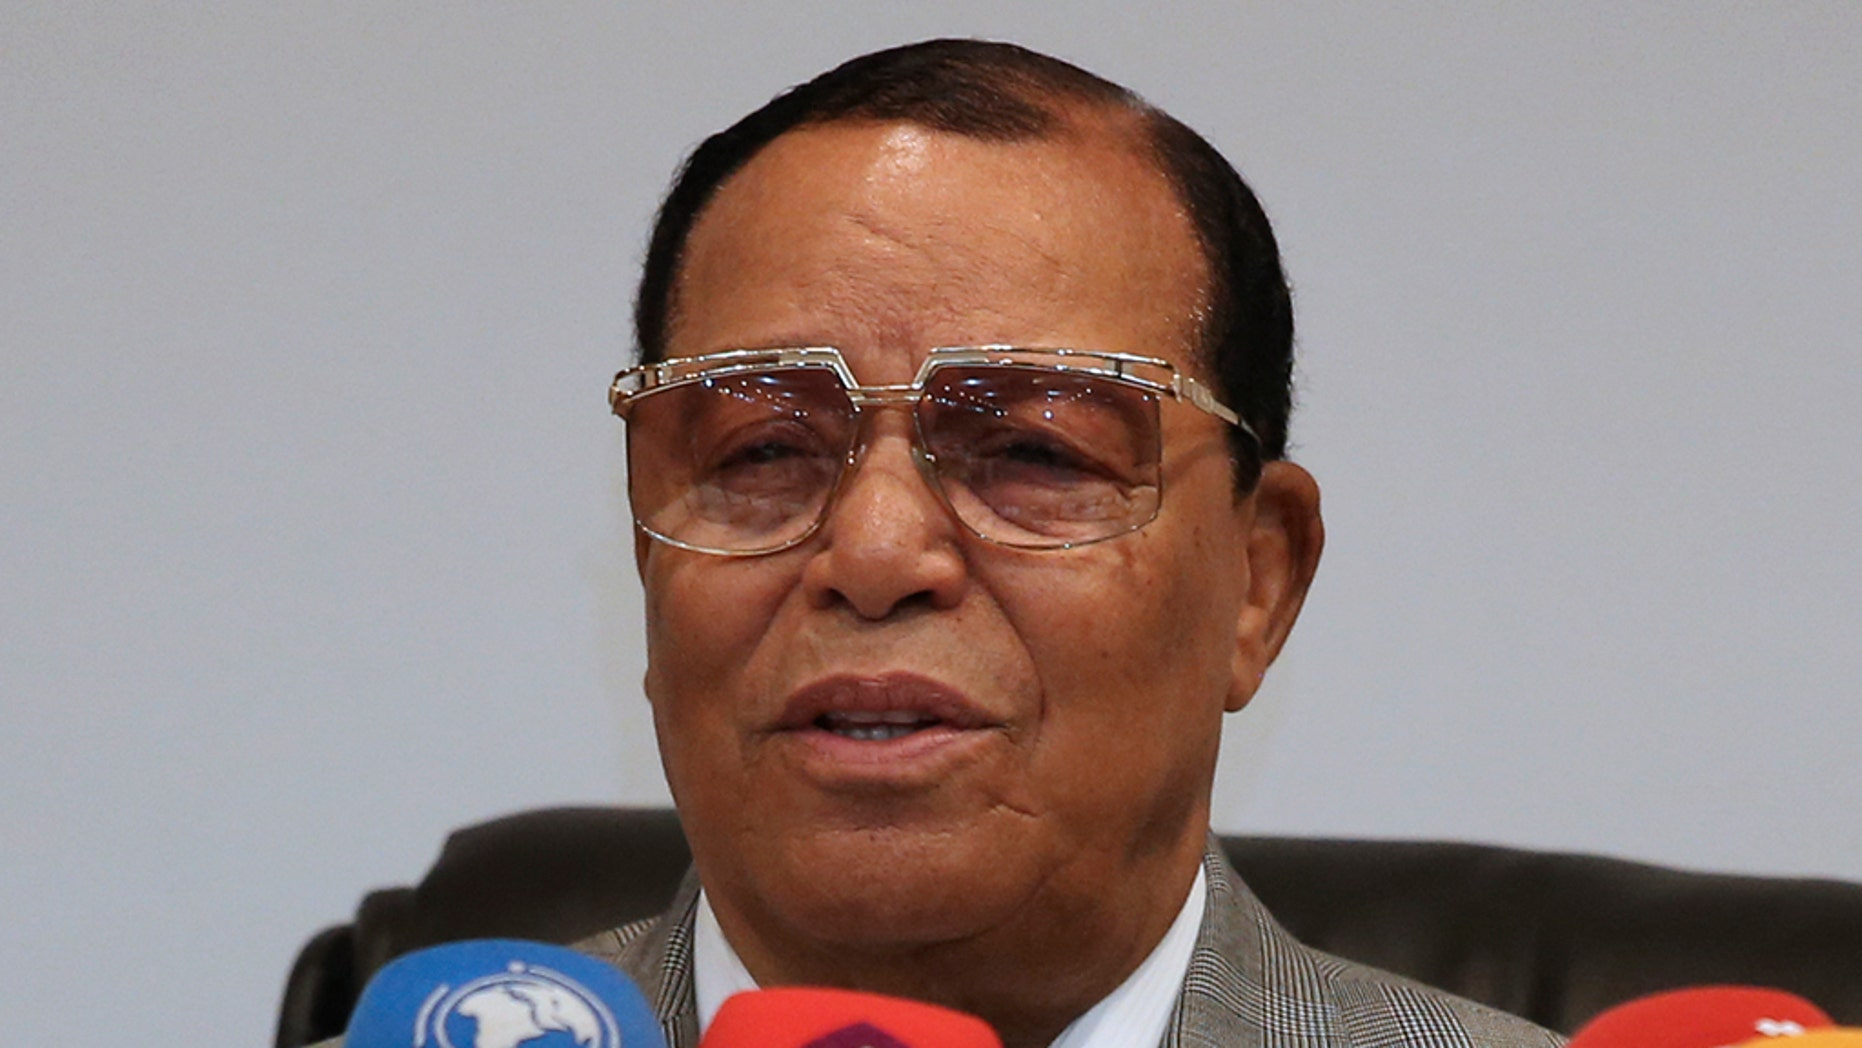 Minister Louis Farrakhan, the leader of the Nation of Islam, speaks at a press conference in Tehran, Iran, Thursday, Nov. 8, 2018 (AP Photo/Vahid Salemi)